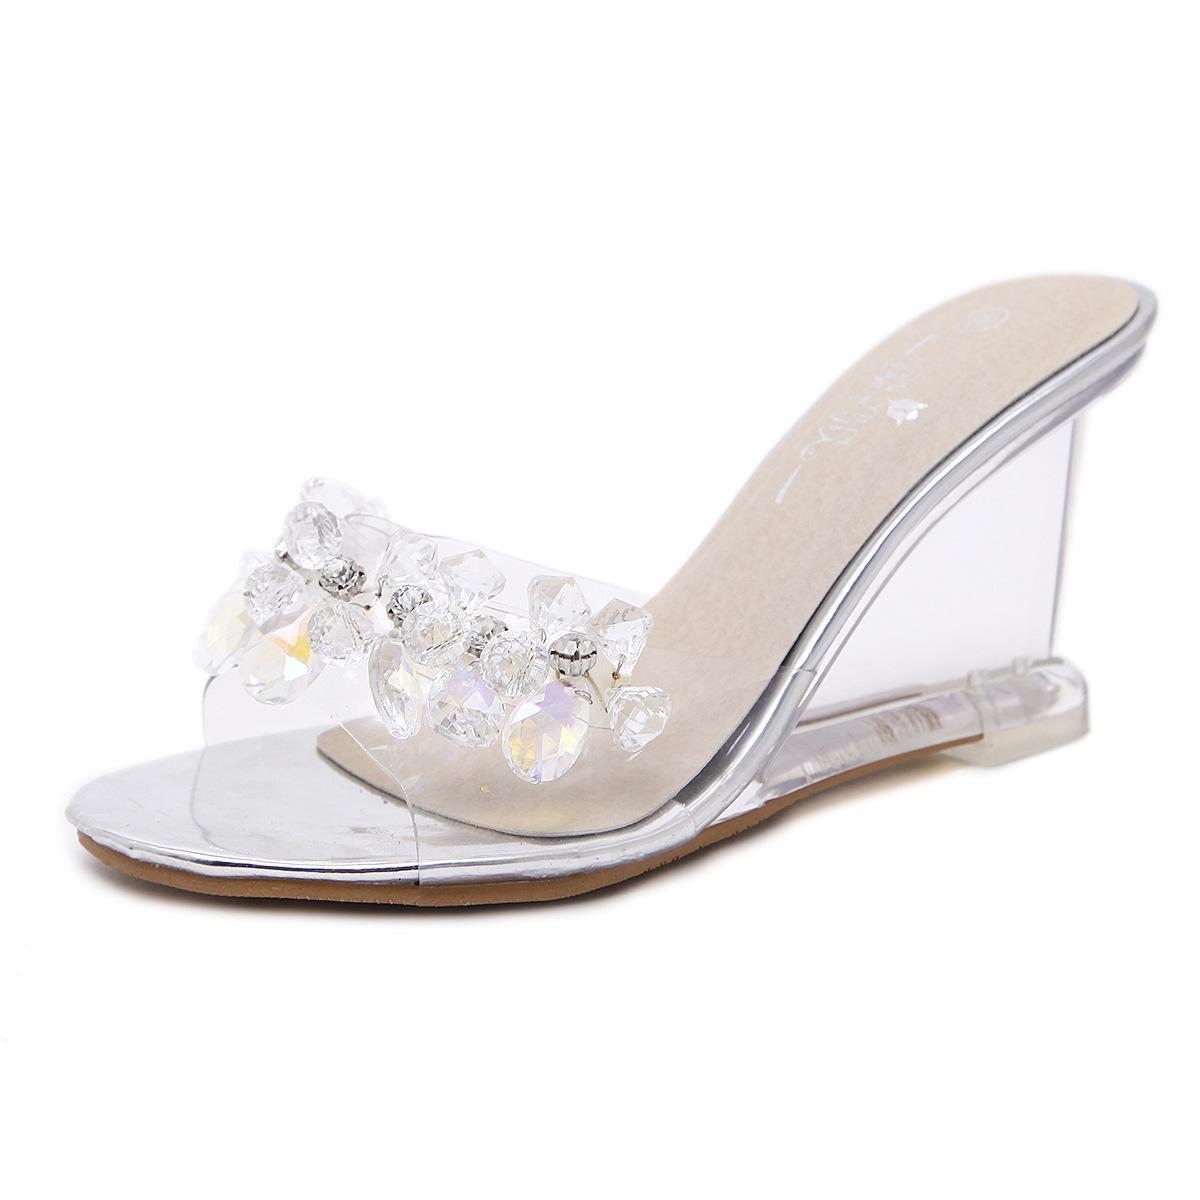 1583c286f9ab31 Wholesale Women Crystal Slipper Wedge Sandals Female Sexy Crystal  Transparent High Heels Rhinestone Wedge Sandals LFD 883 5 Boys Sandals  Dansko Sandals From ...